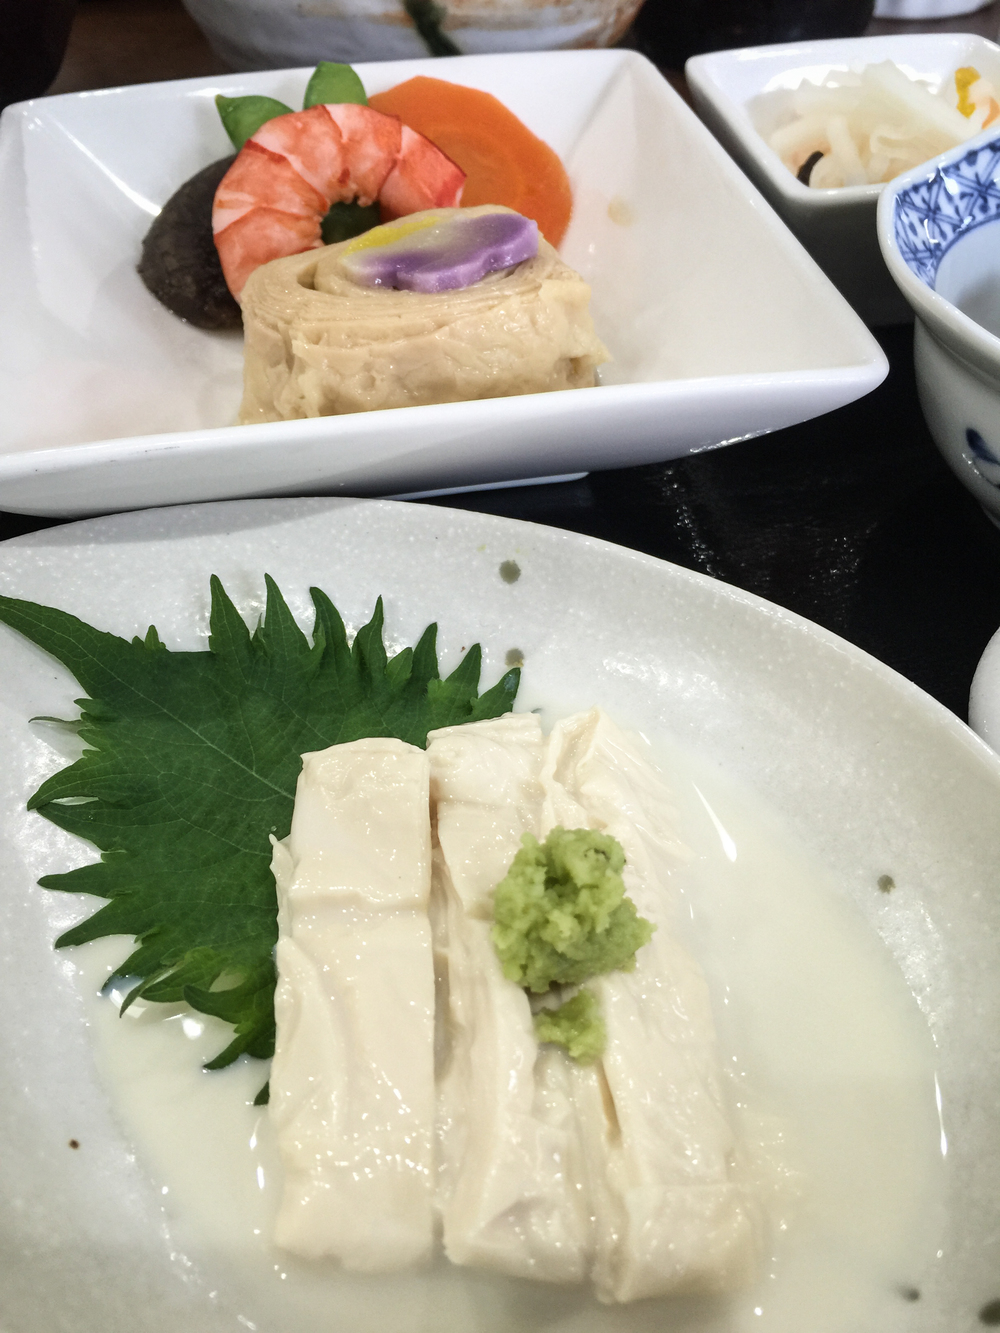 Sliced Yuba with wasabi